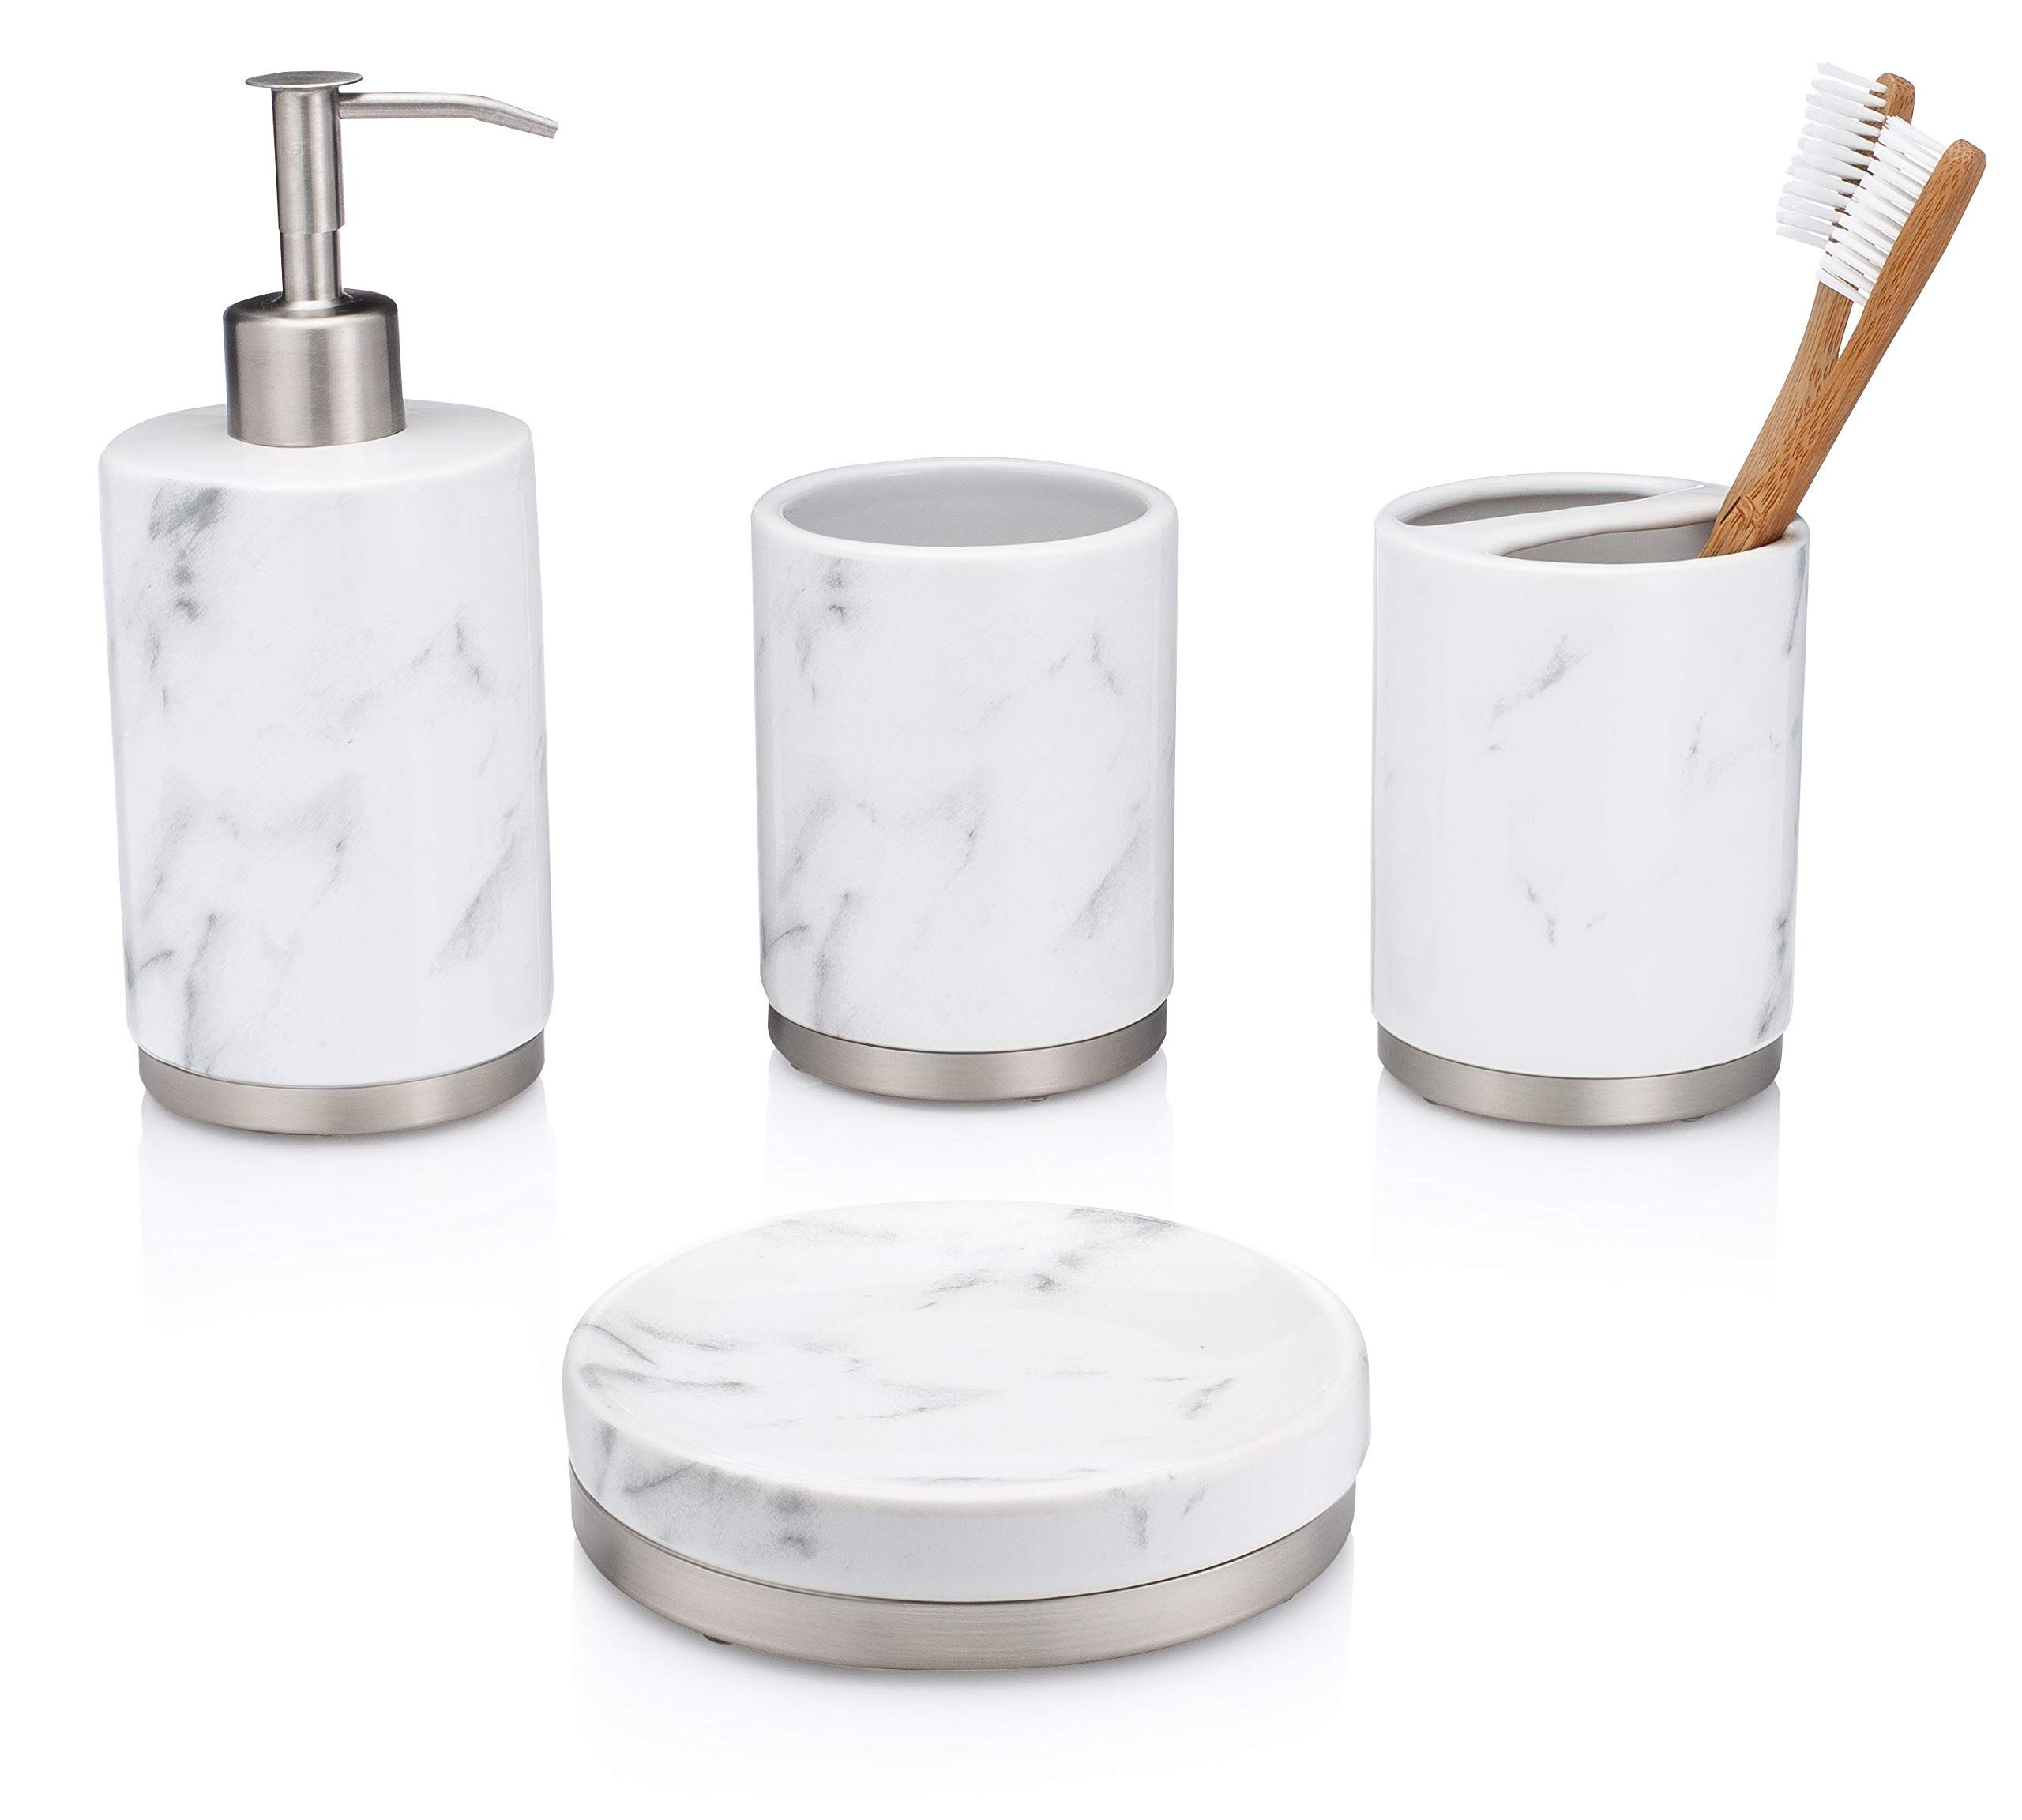 Essentrahome 4 Piece White Ceramic Bathroom Accessory Set With